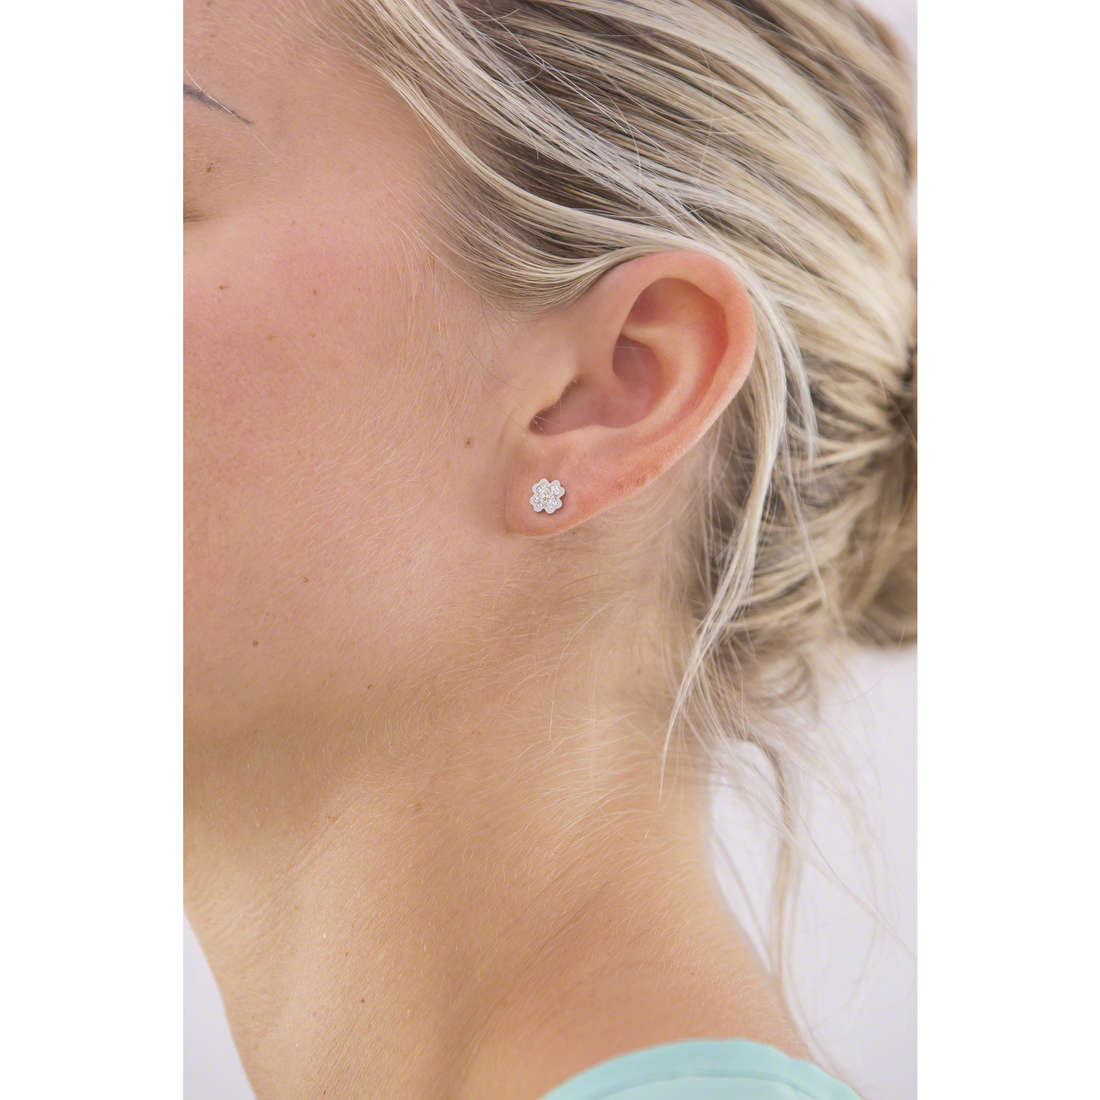 Marlù boucles d'oreille Time To femme 18OR030 indosso